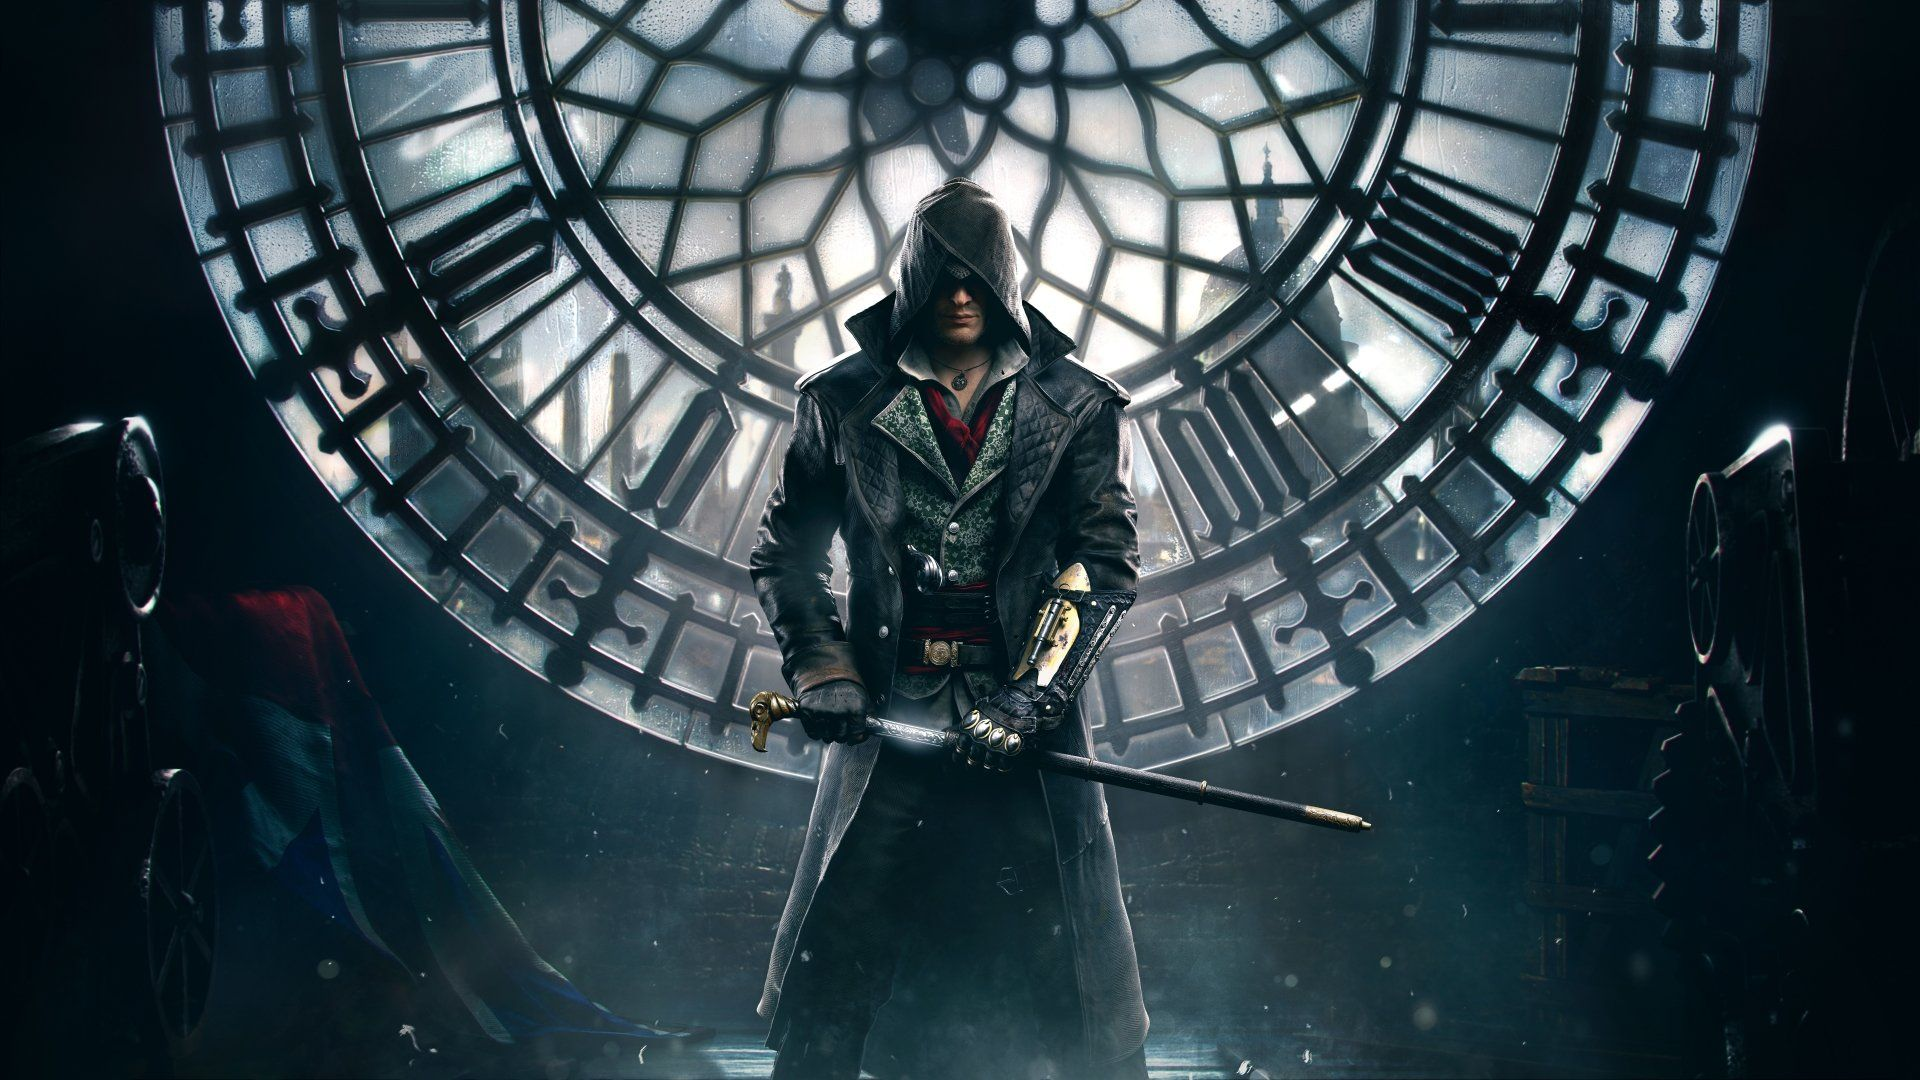 Video Game Assassin S Creed Syndicate Assassin S Creed Jacob Frye Wallpaper Assassin S Creed Wallpaper Assassins Creed Assassin S Creed Hd